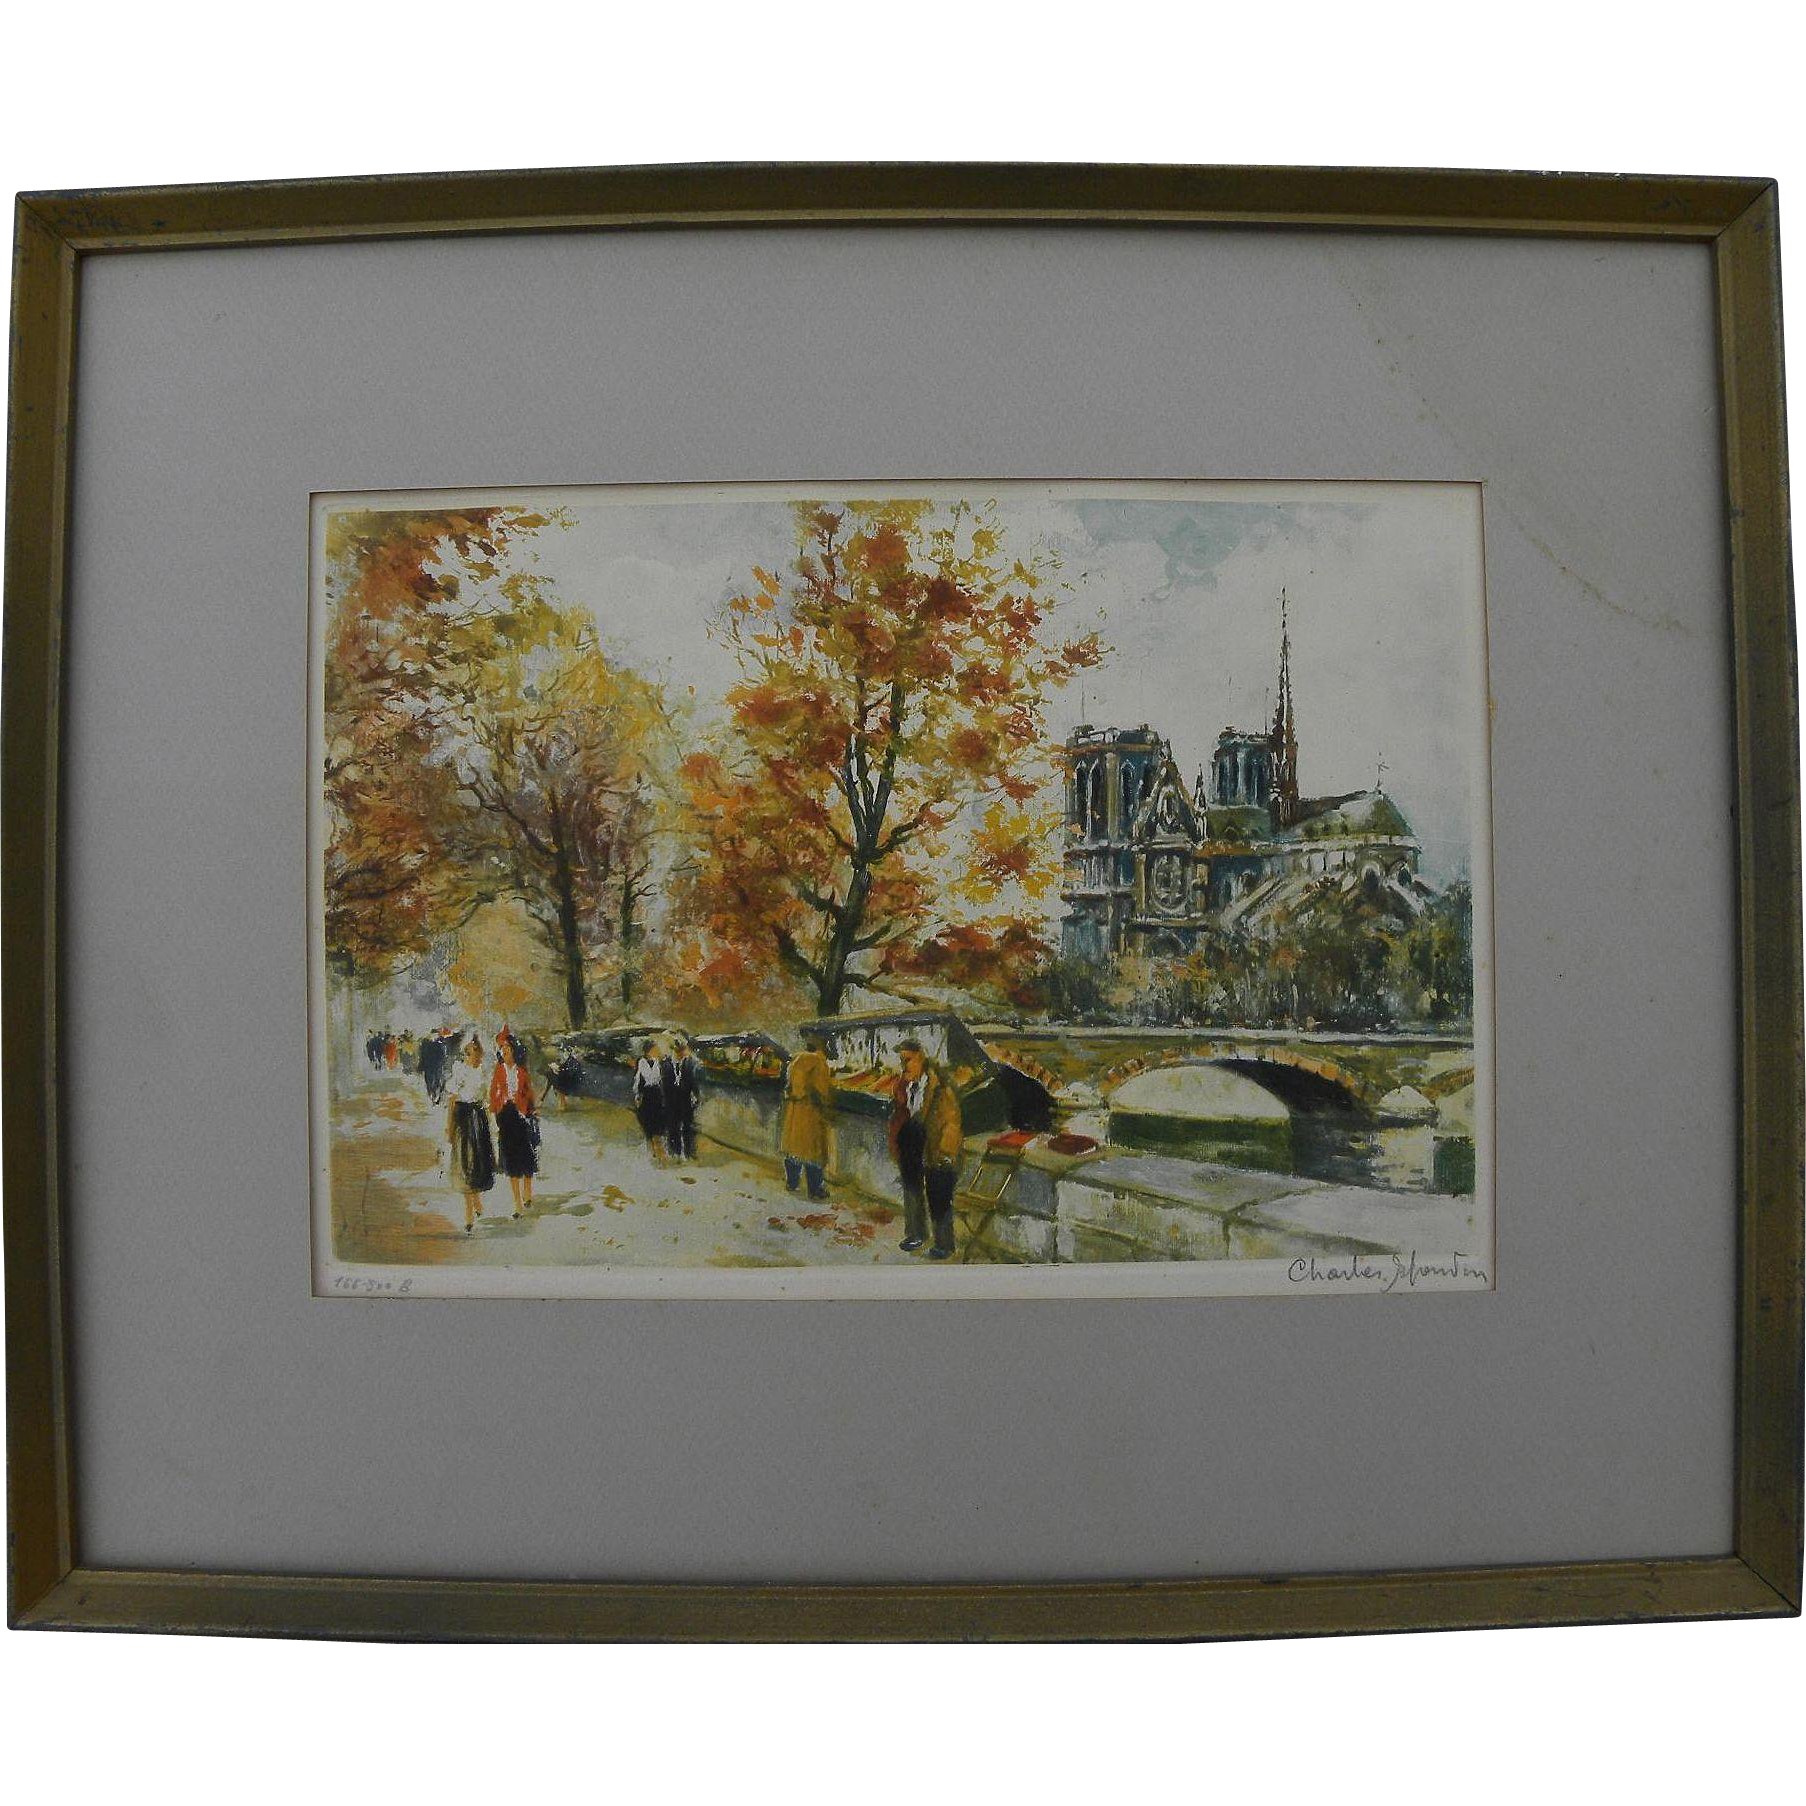 CHARLES BLONDIN (1913-1991) pencil signed limited edition Paris print of scene along the Seine River including Notre Dame